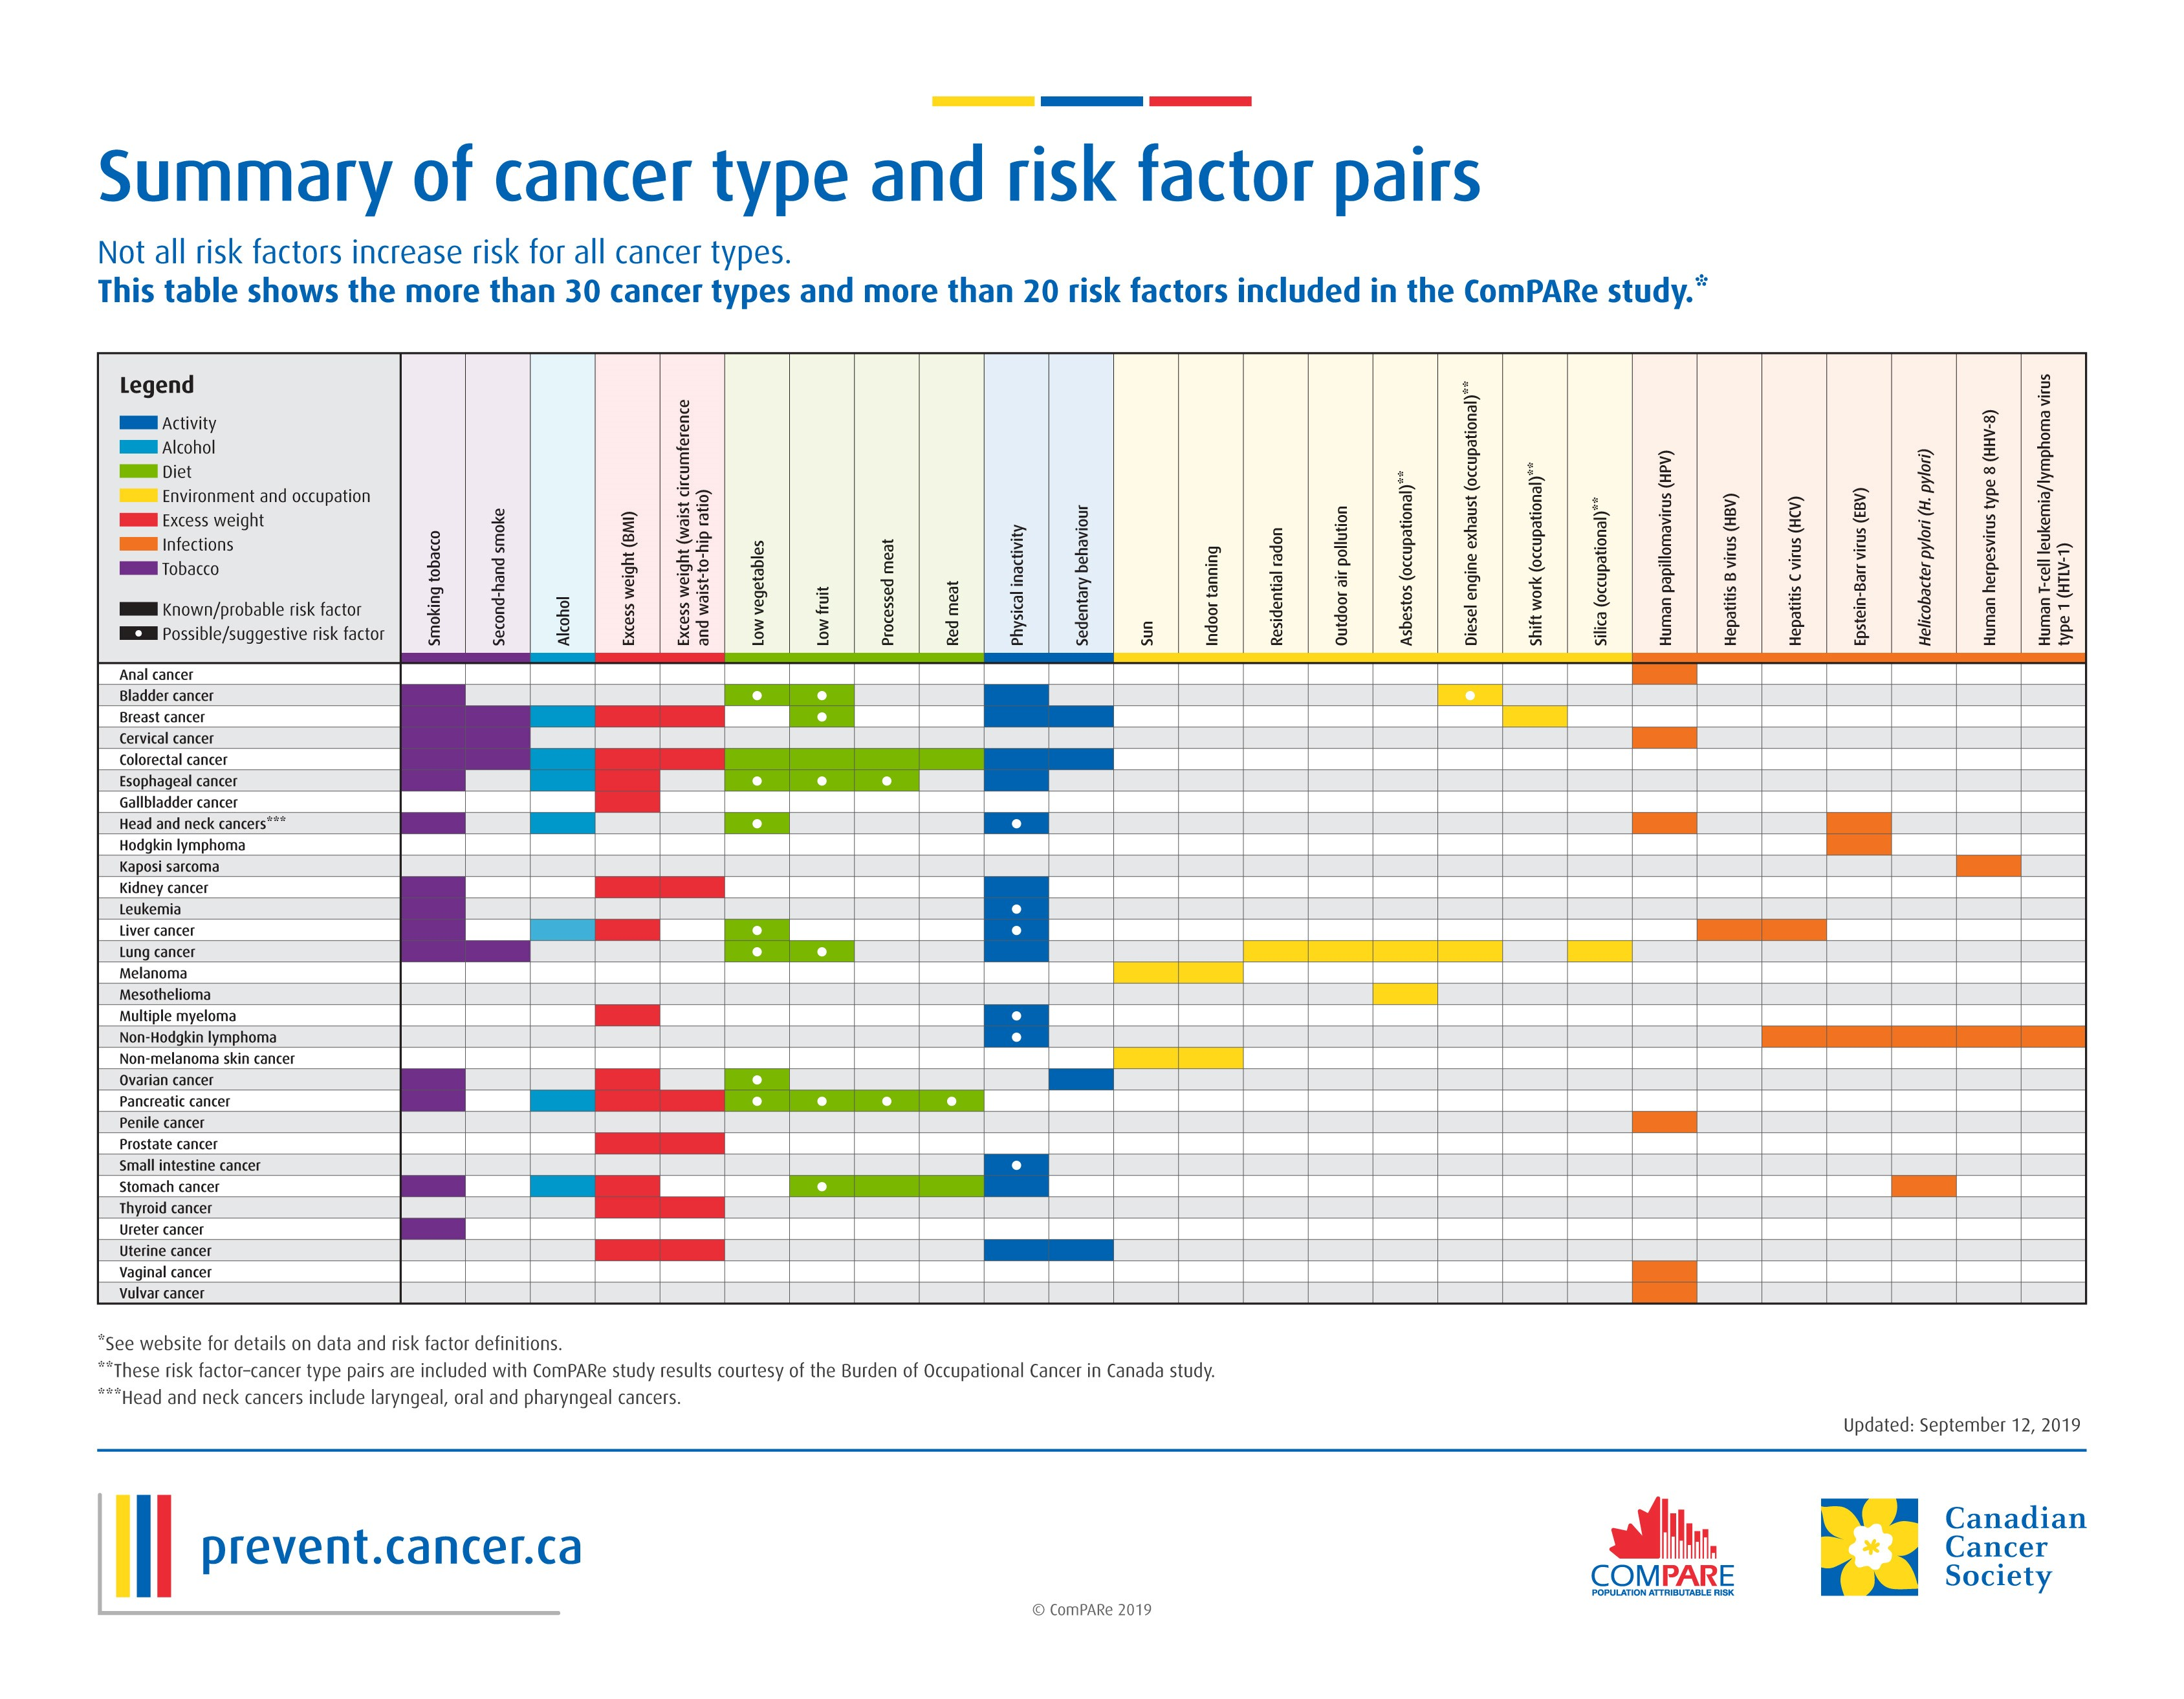 Explore The Compare Cancer Study Data With Interactive Tools